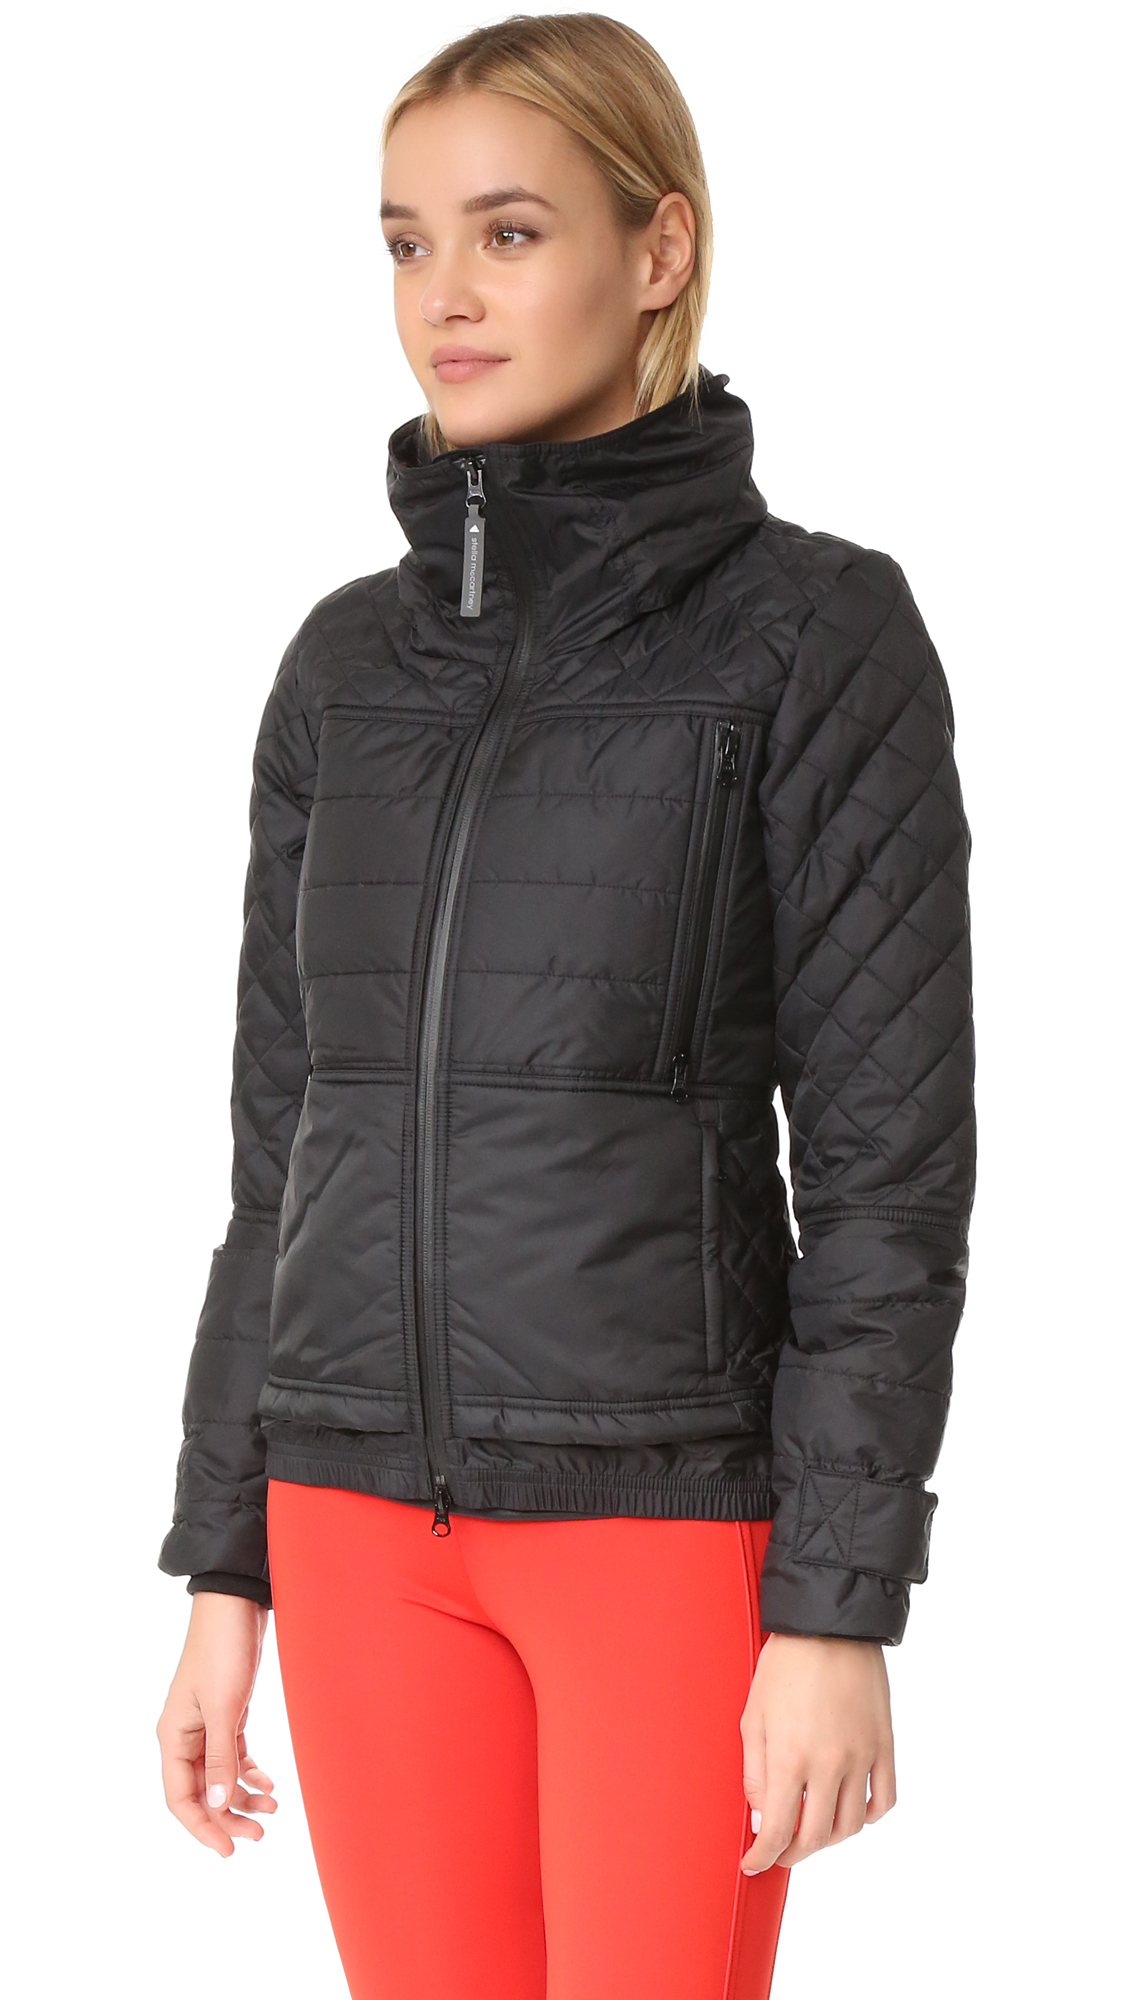 ed9c8ca9abb adidas by Stella McCartney Winter Sports Jacket | SHOPBOP